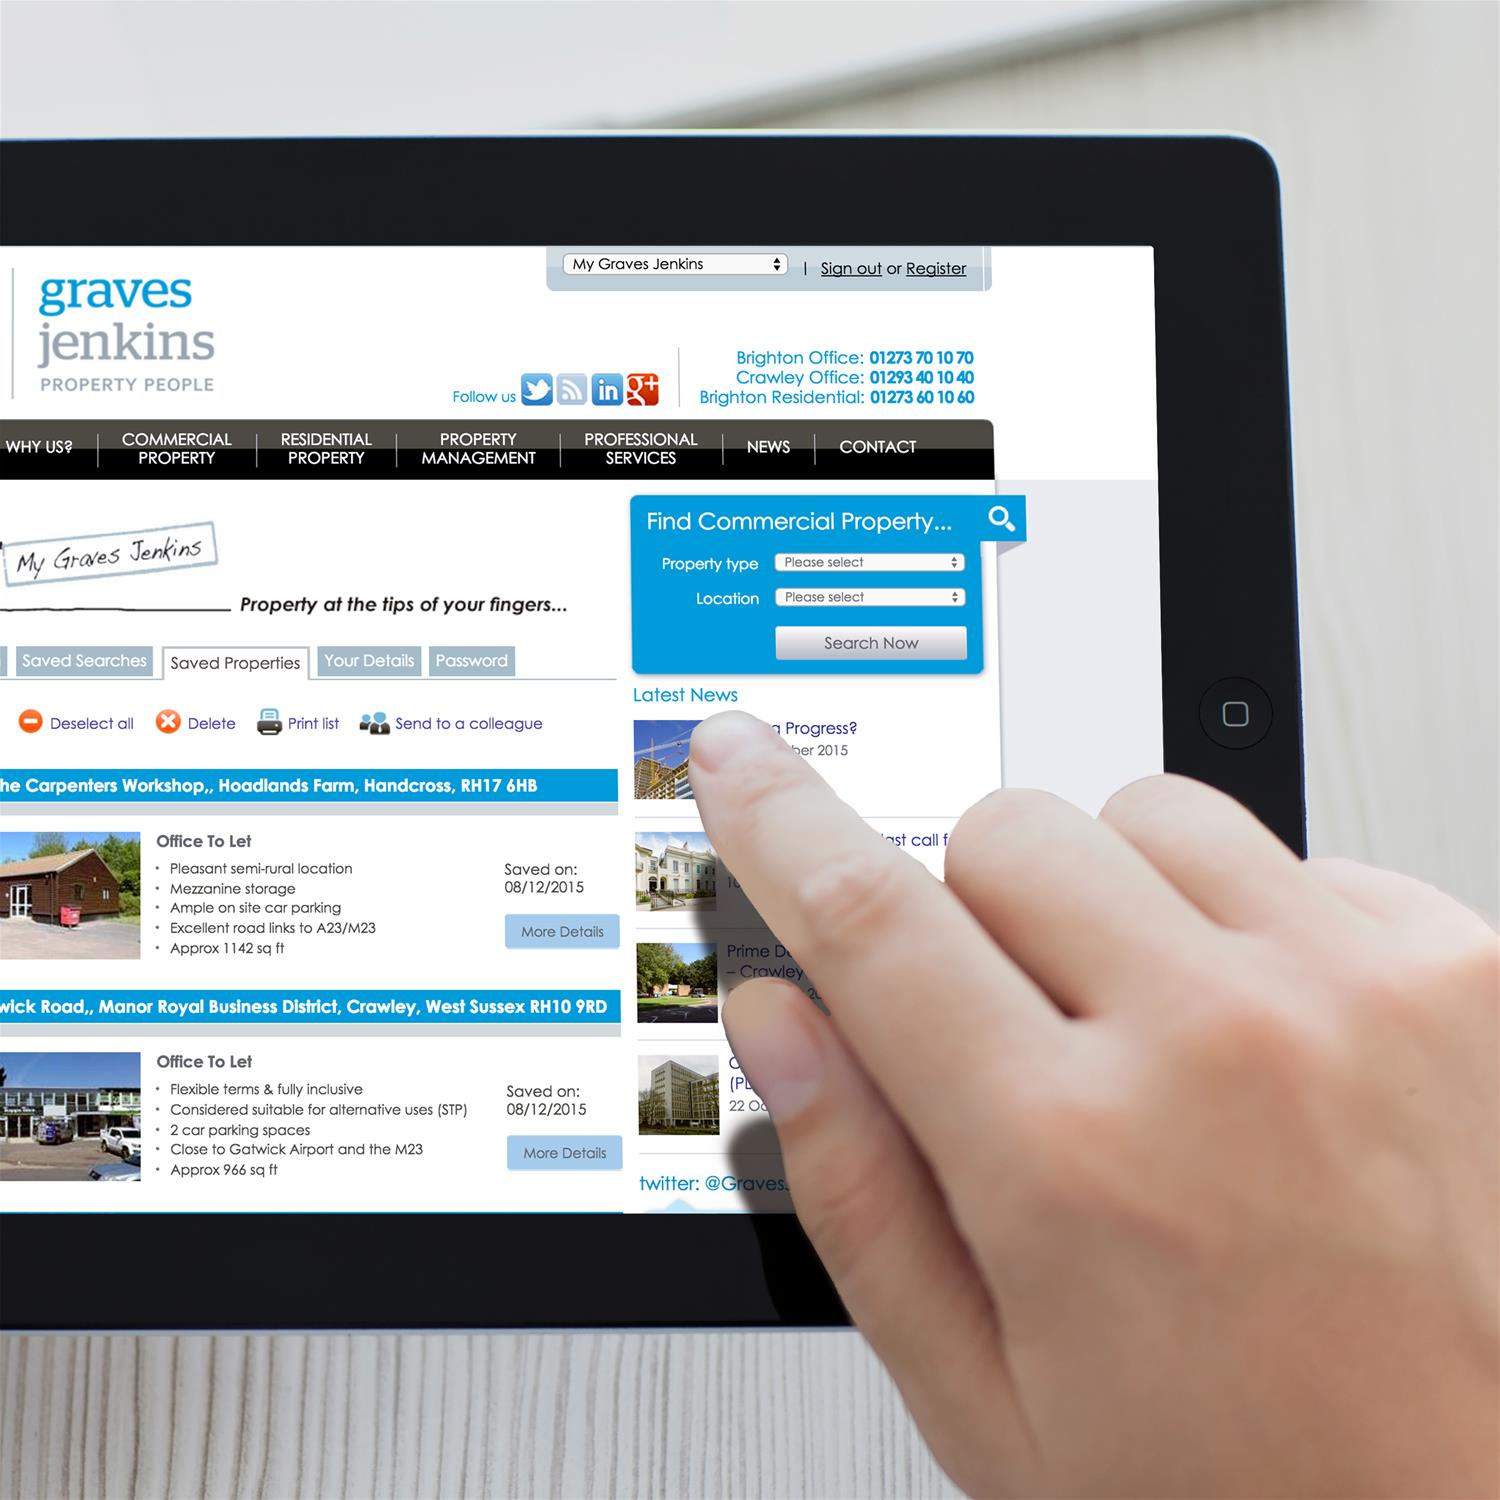 Graves Jenkins website design on tablet